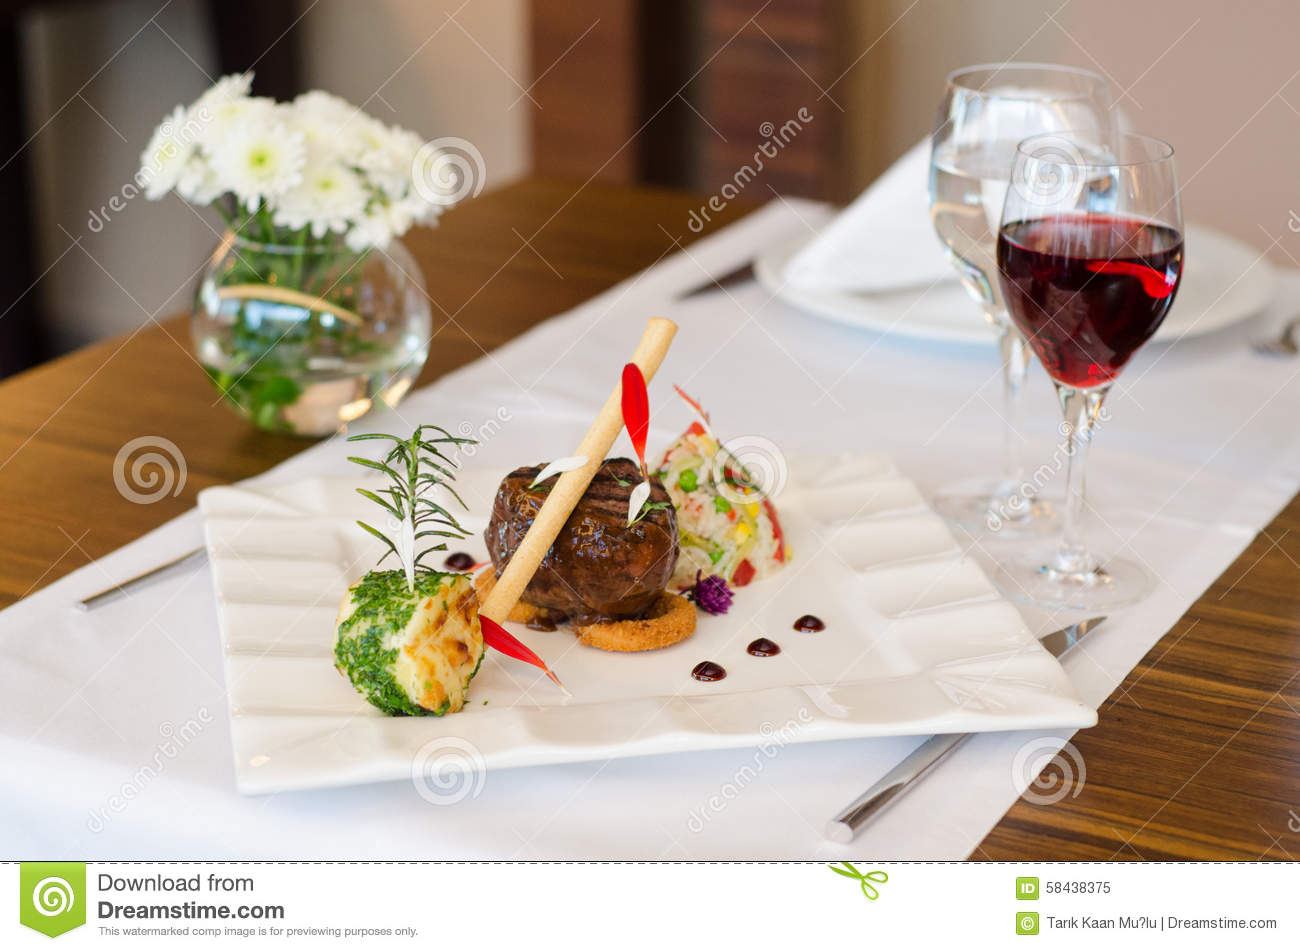 Dining table with steak and wine